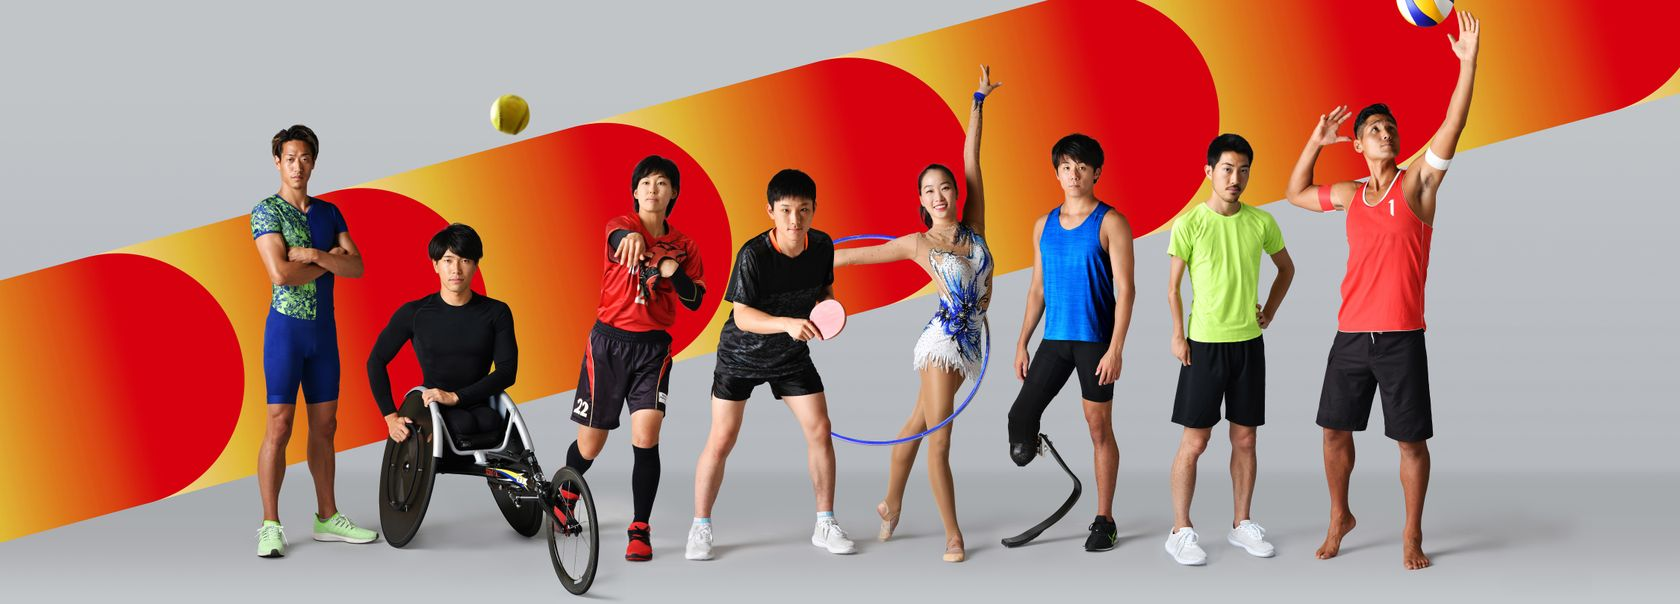 Global_Team_Toyota_Athlete_A